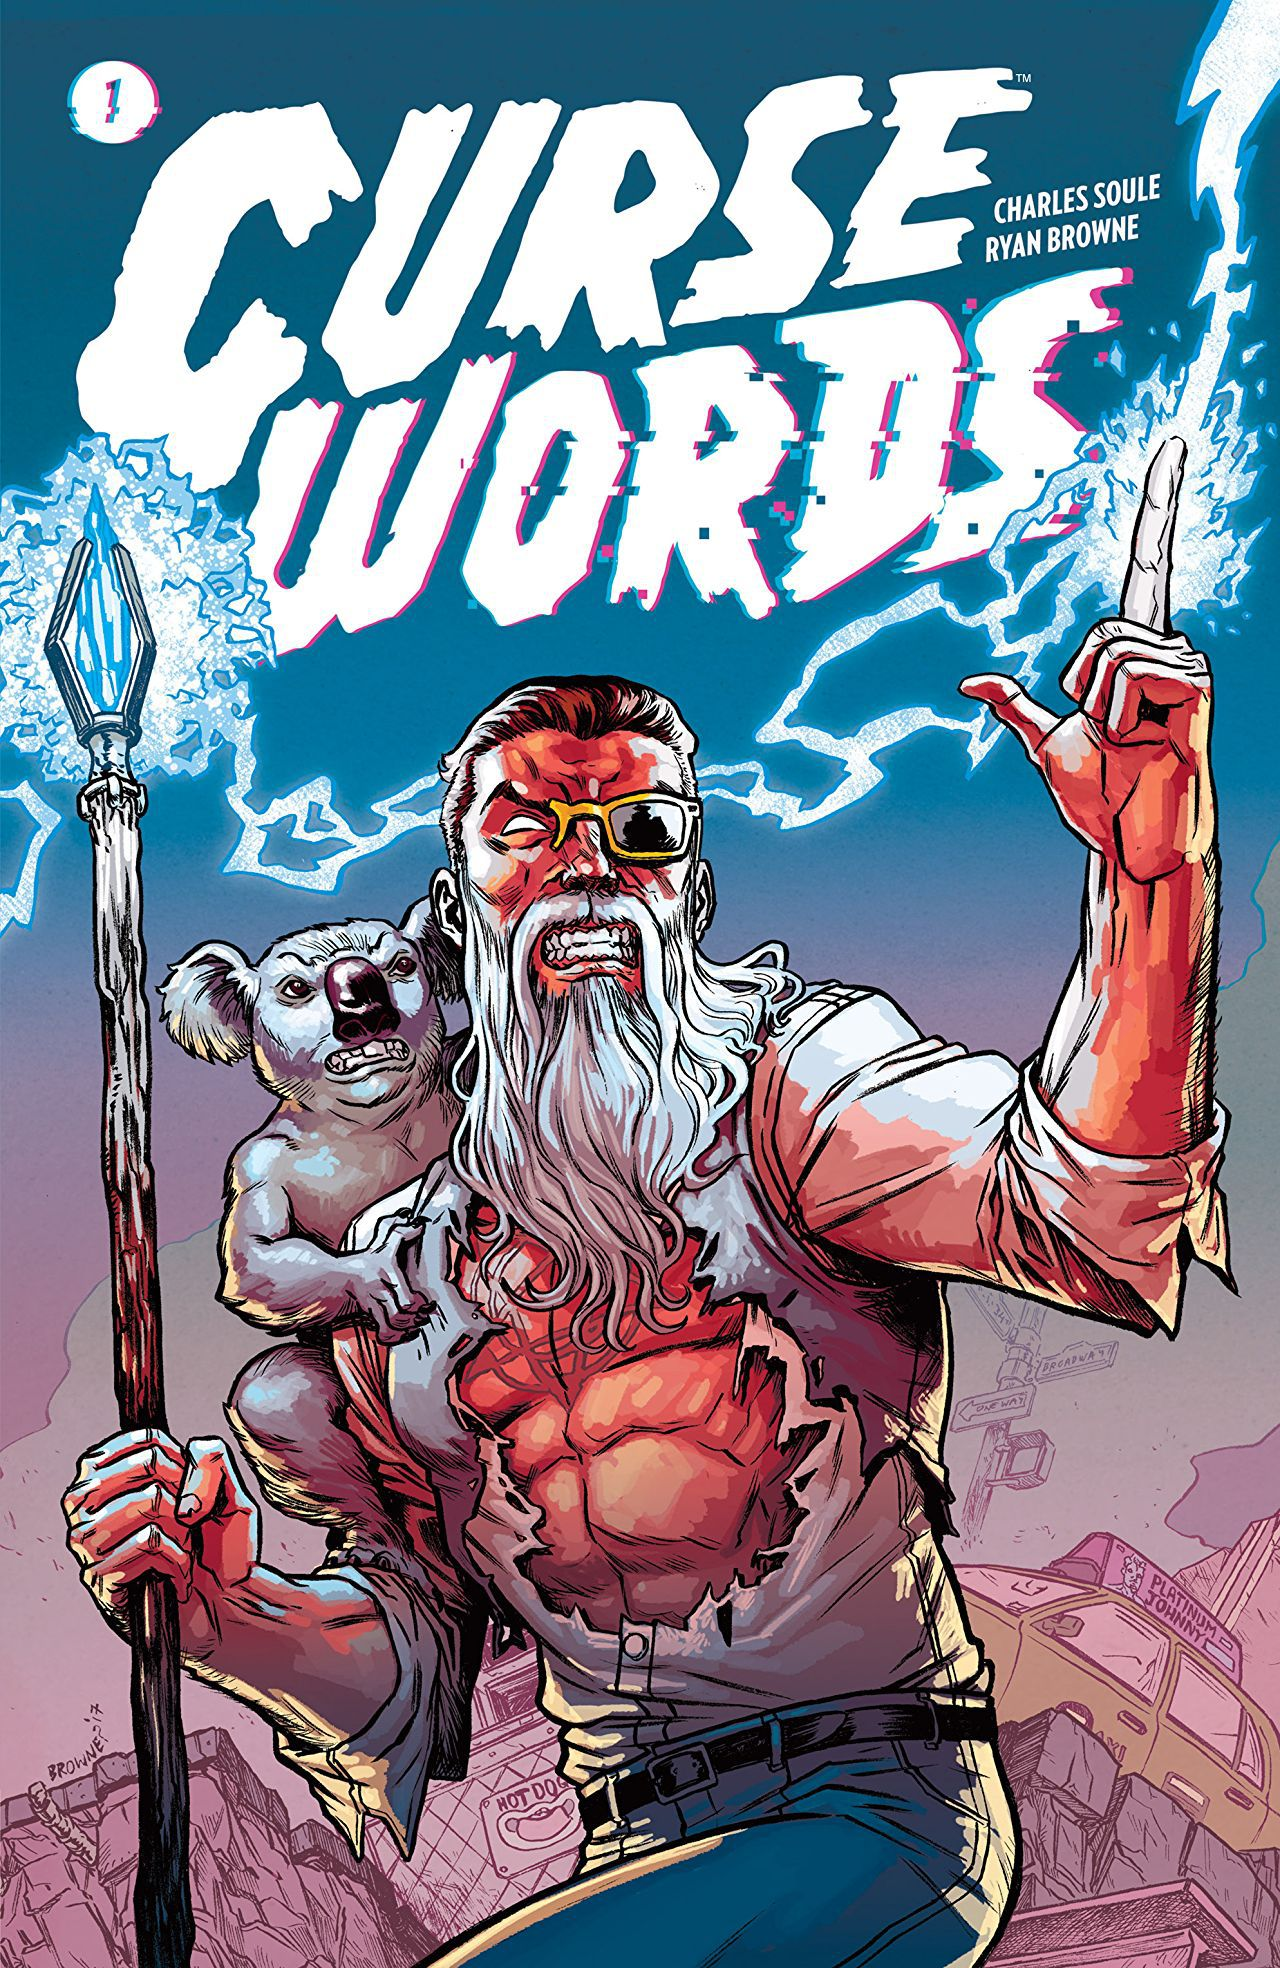 Cover to 'Curse Words' Vol. 1 TPB. Art by Ryan Browne and Michael Garland/Image Comics